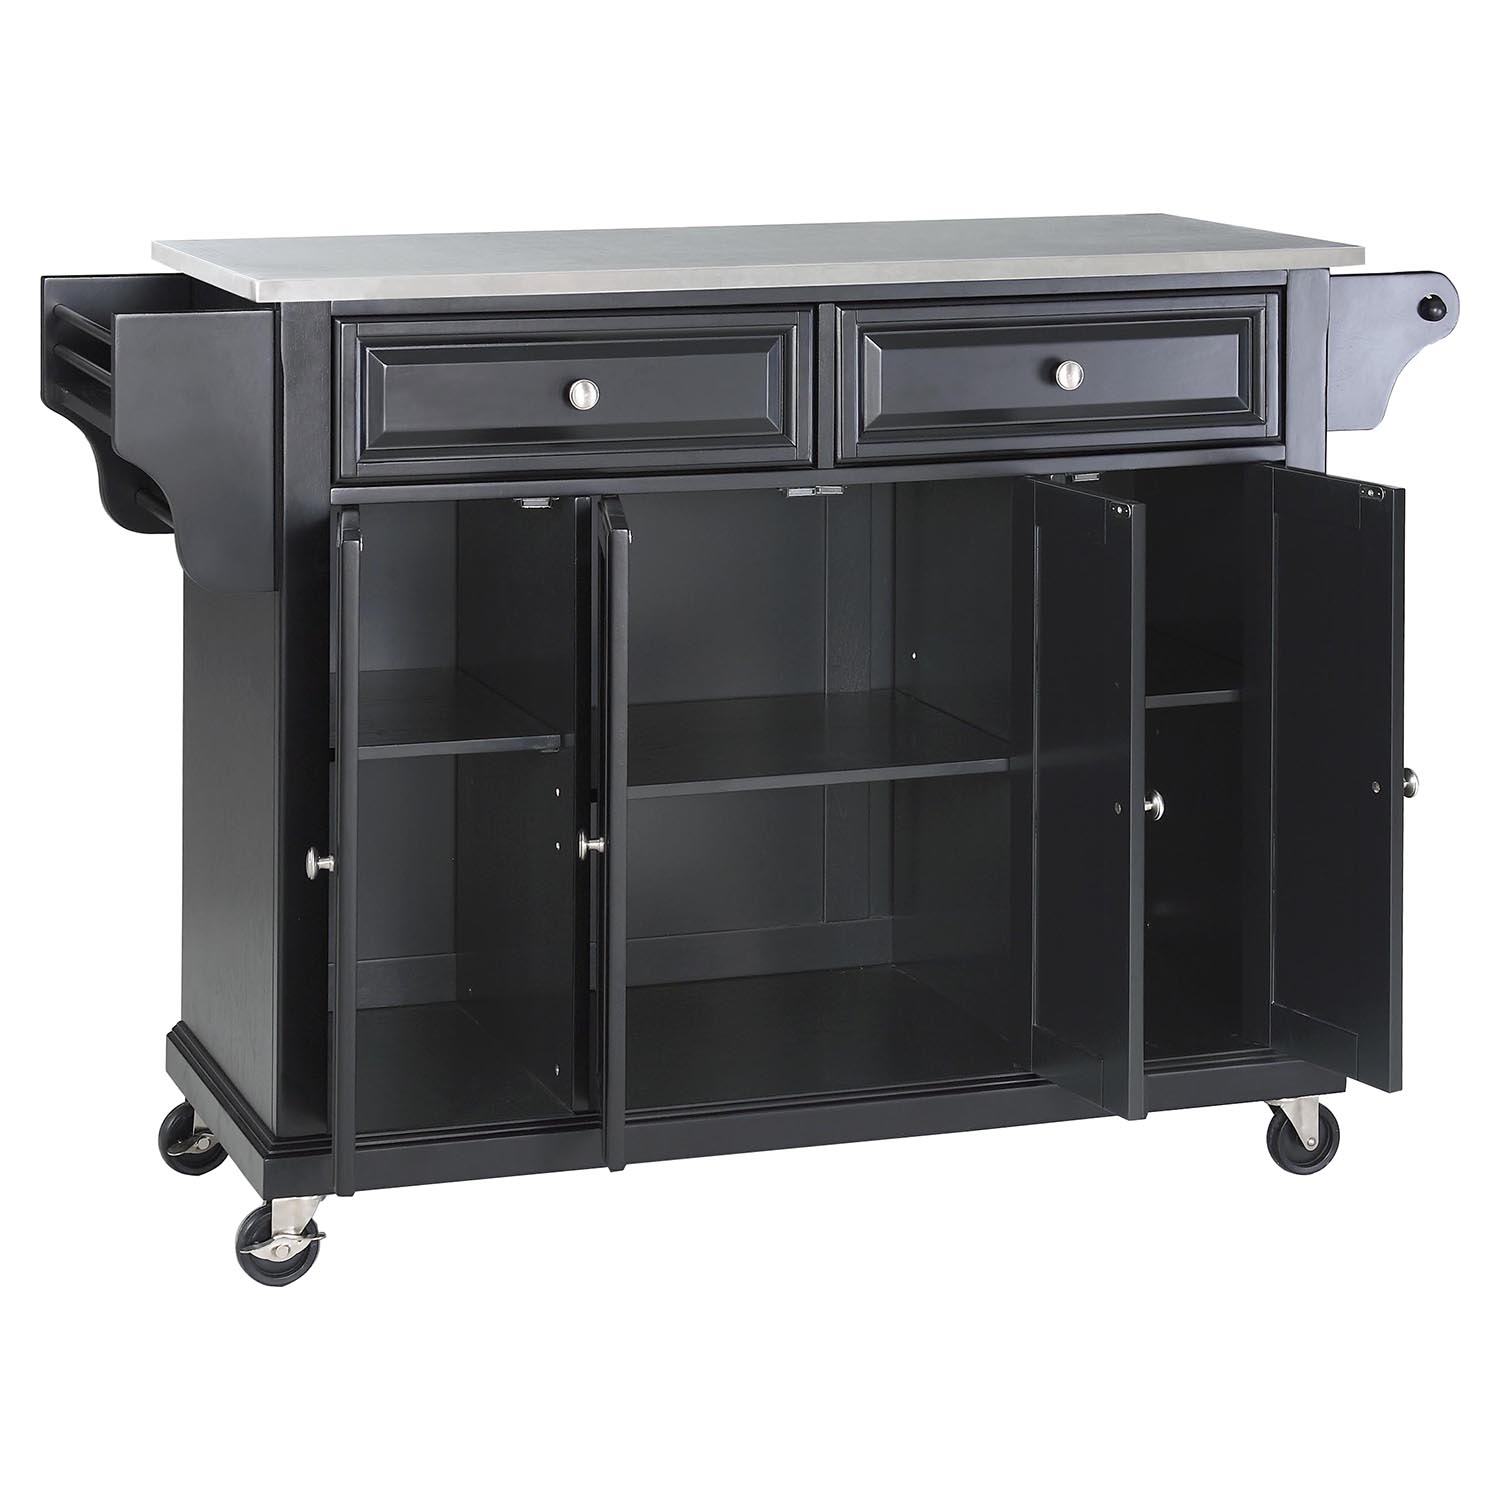 Stainless Steel Top Kitchen Cart Island Casters Black